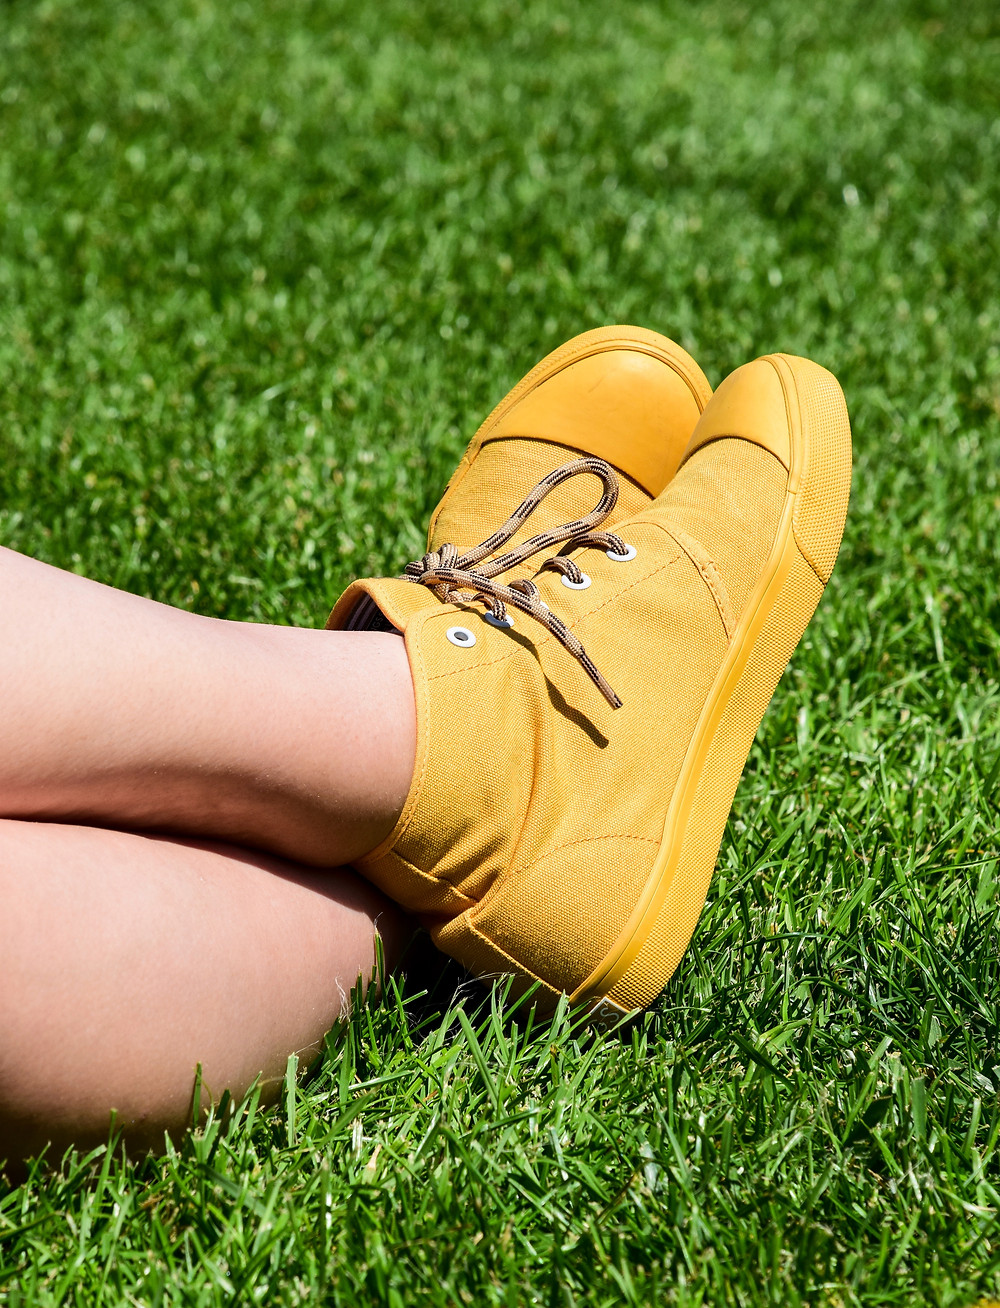 picture of a person's feet wearing yellow shoes